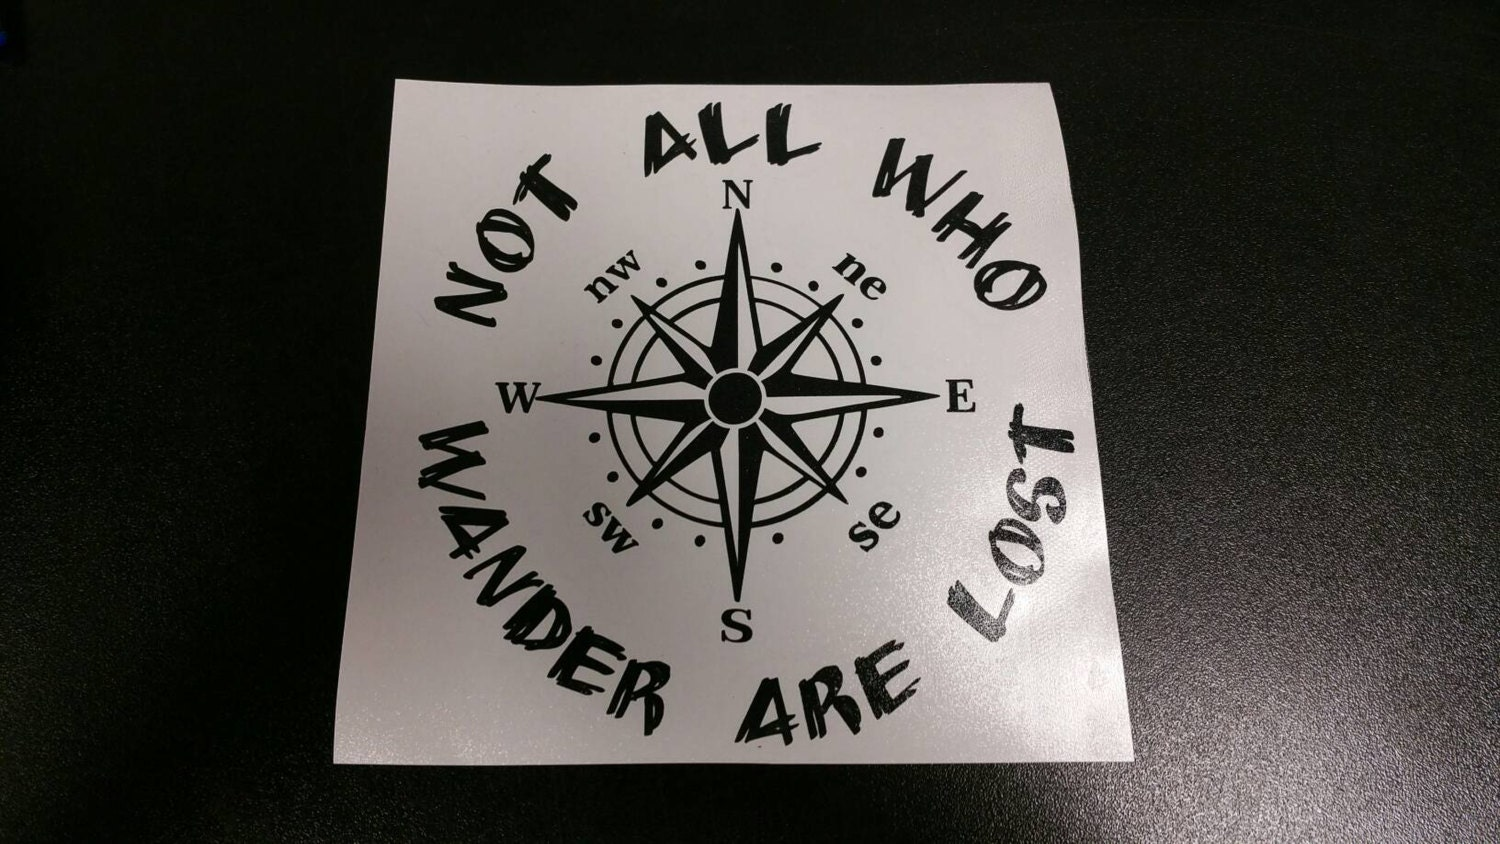 Not All Who Wander Are Lost Compass Vinyl Decal Sticker - Jeep hood decalsall that wander are not lost compass jeep hood decal sticker